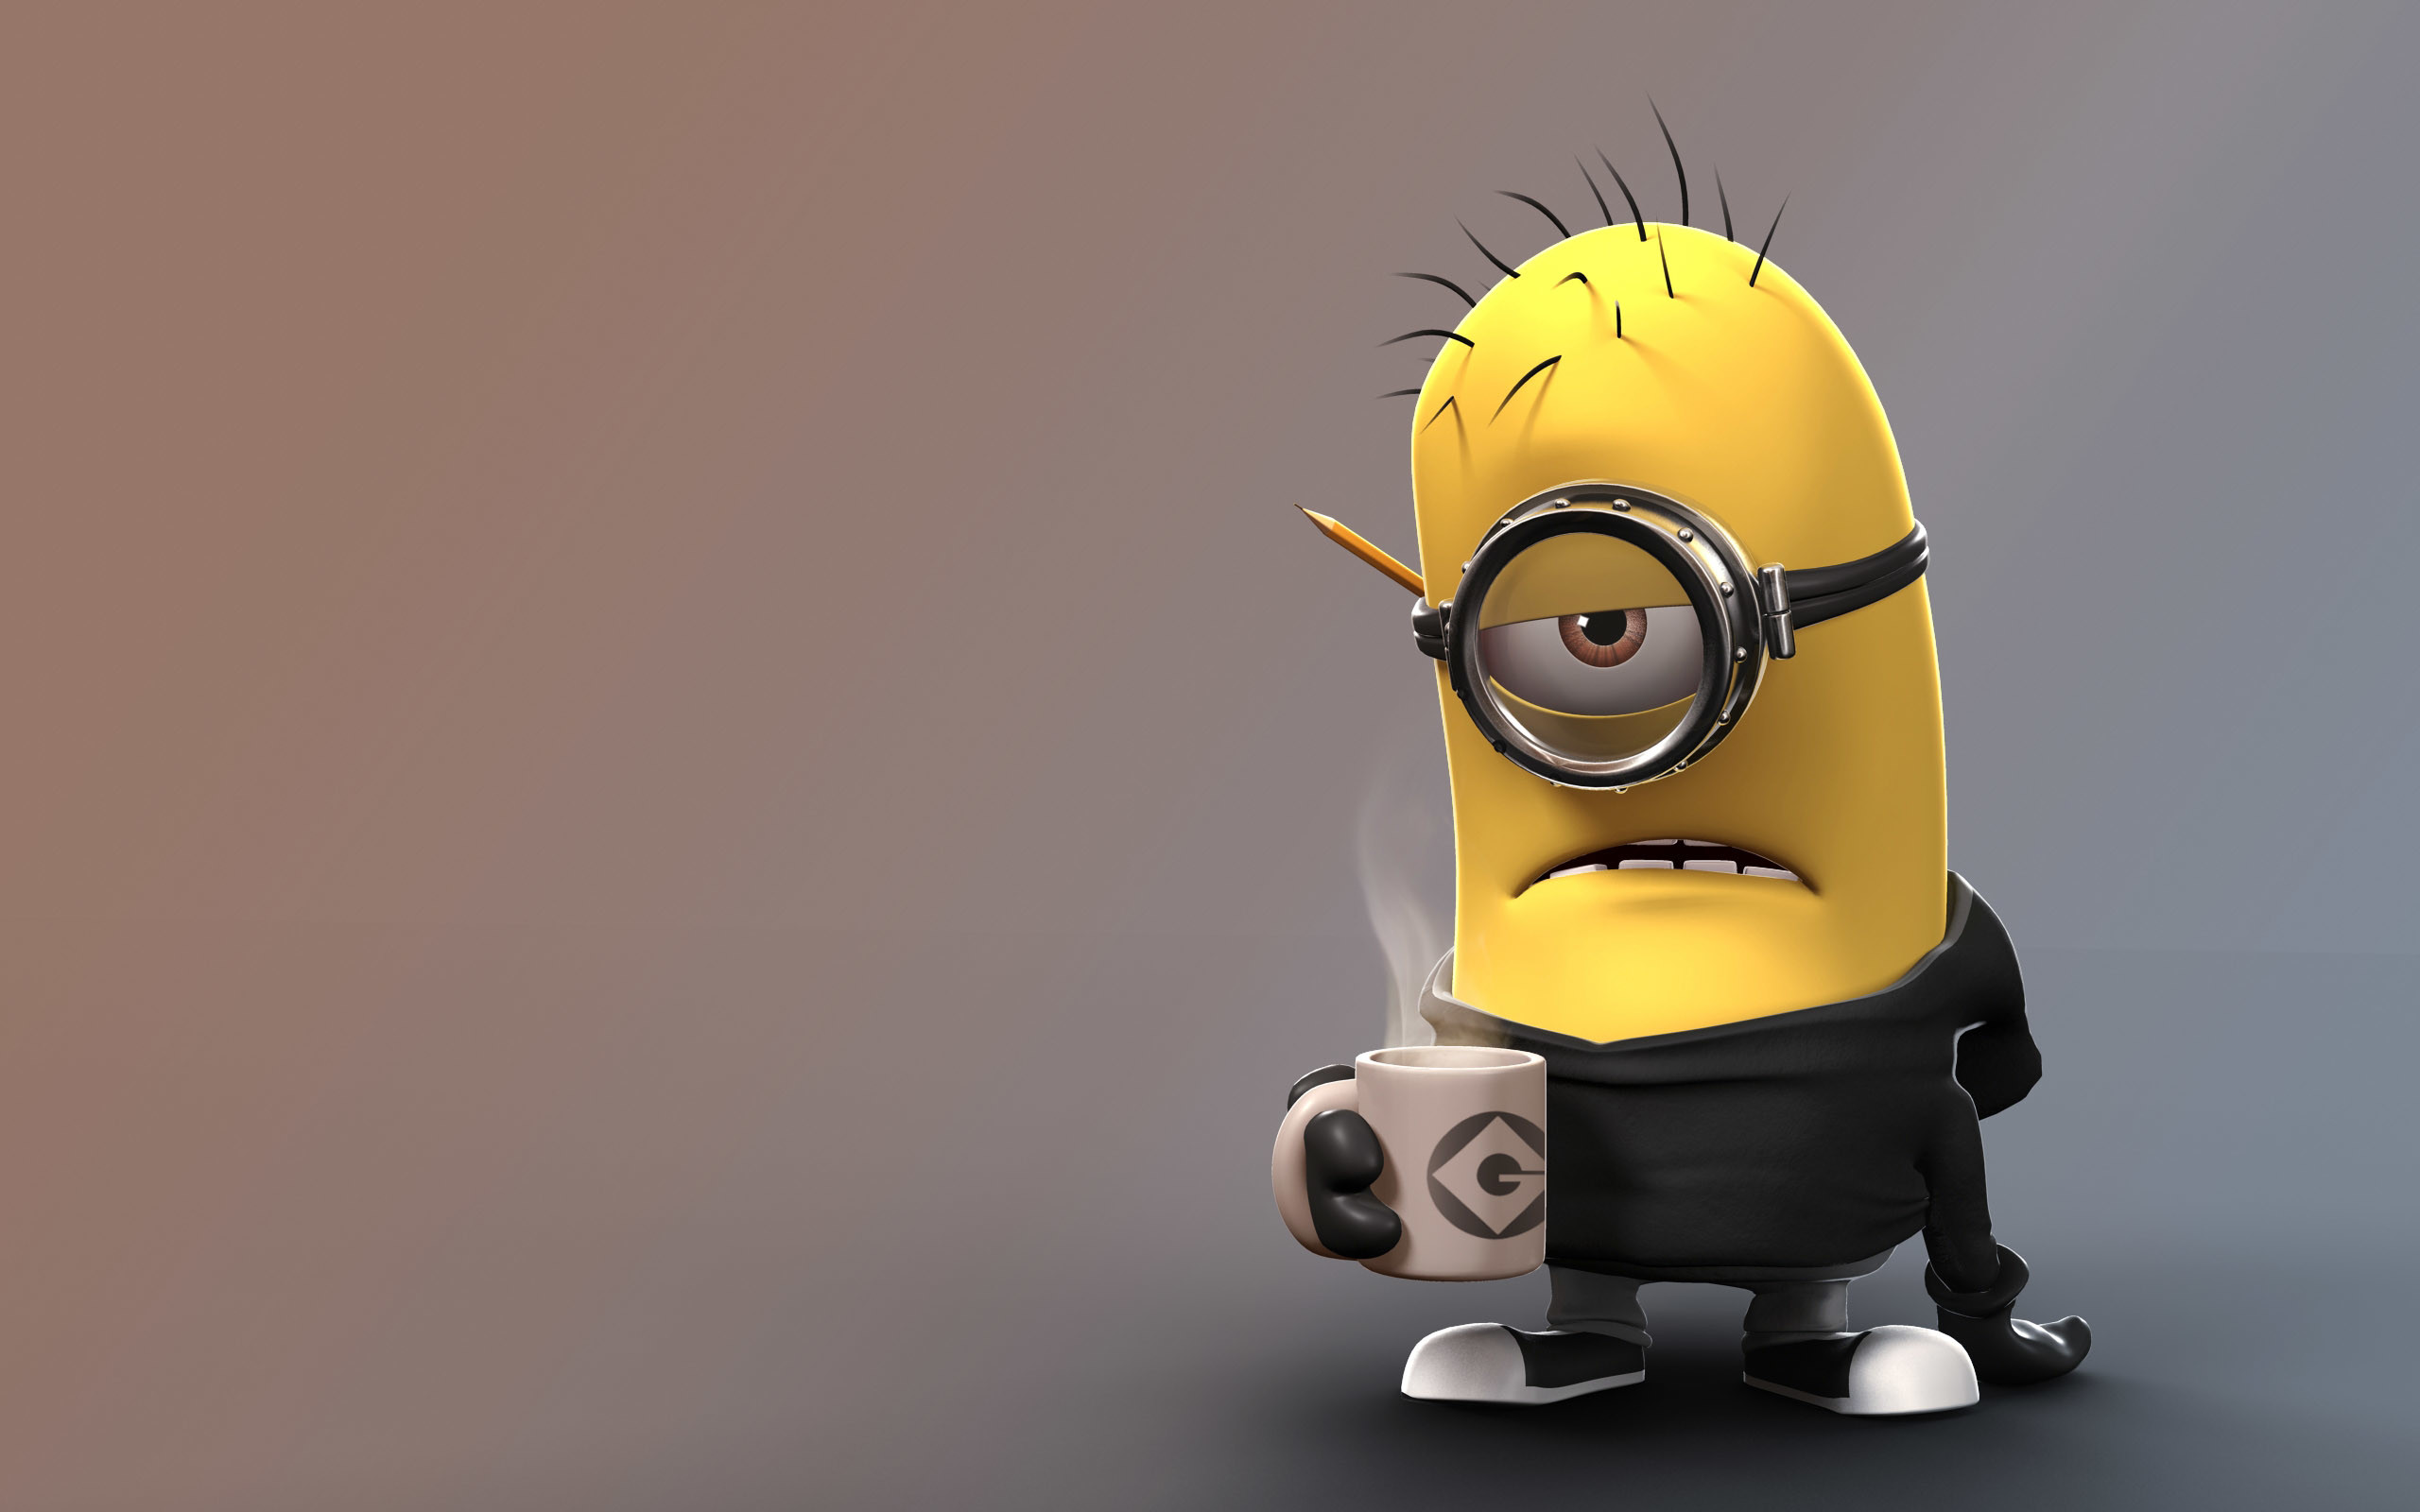 Res: 2560x1600, [Cartoons] A Cute Collection Of Despicable Me 2 Minions | Wallpapers,  Images & Fan Art